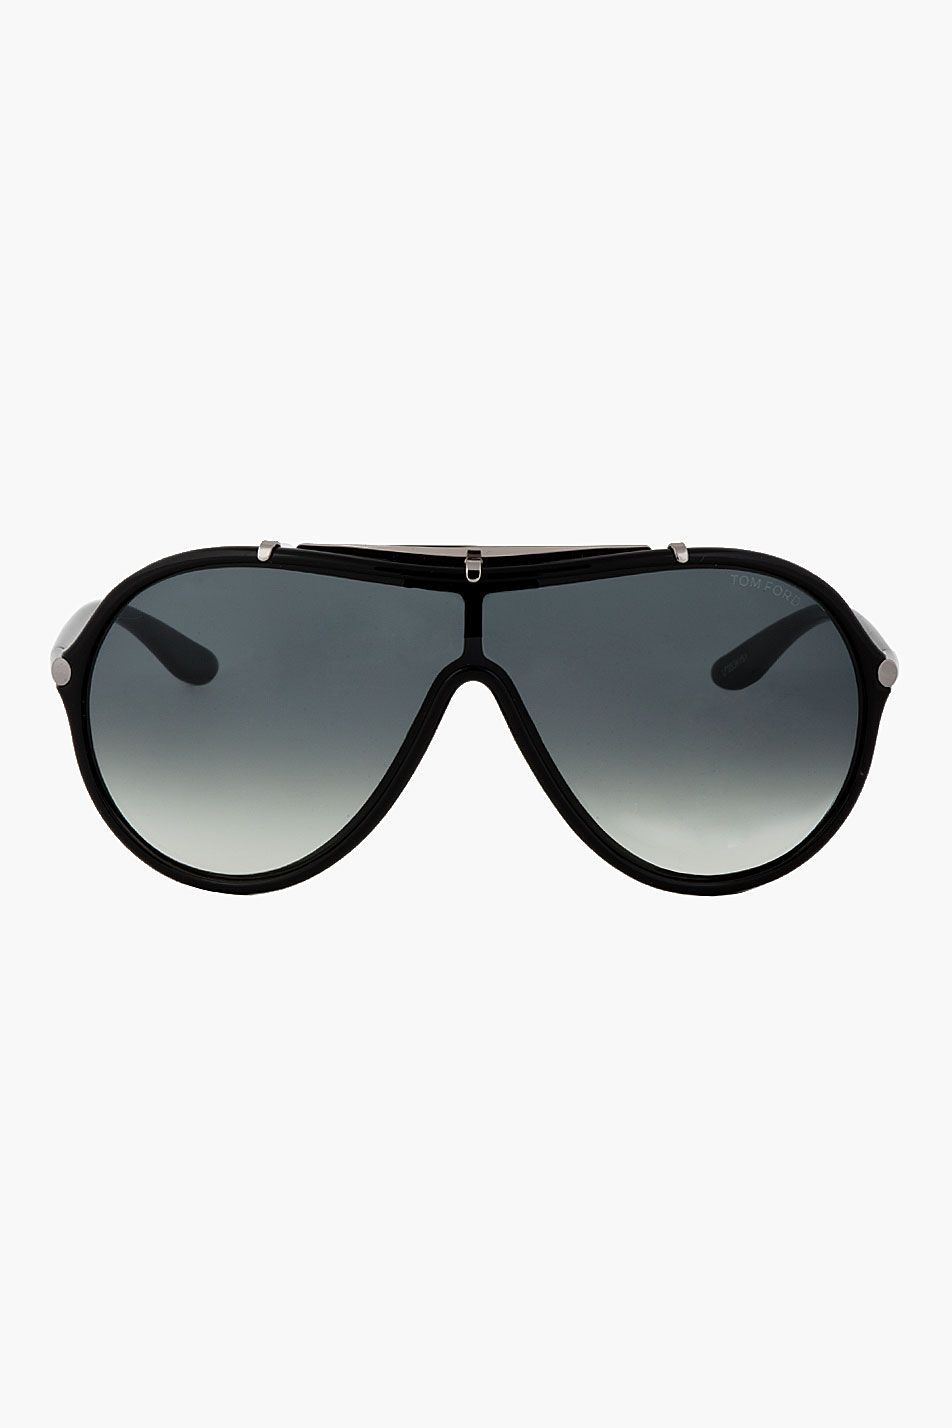 6a31bf321fe TOM FORD Black Ace Aviators